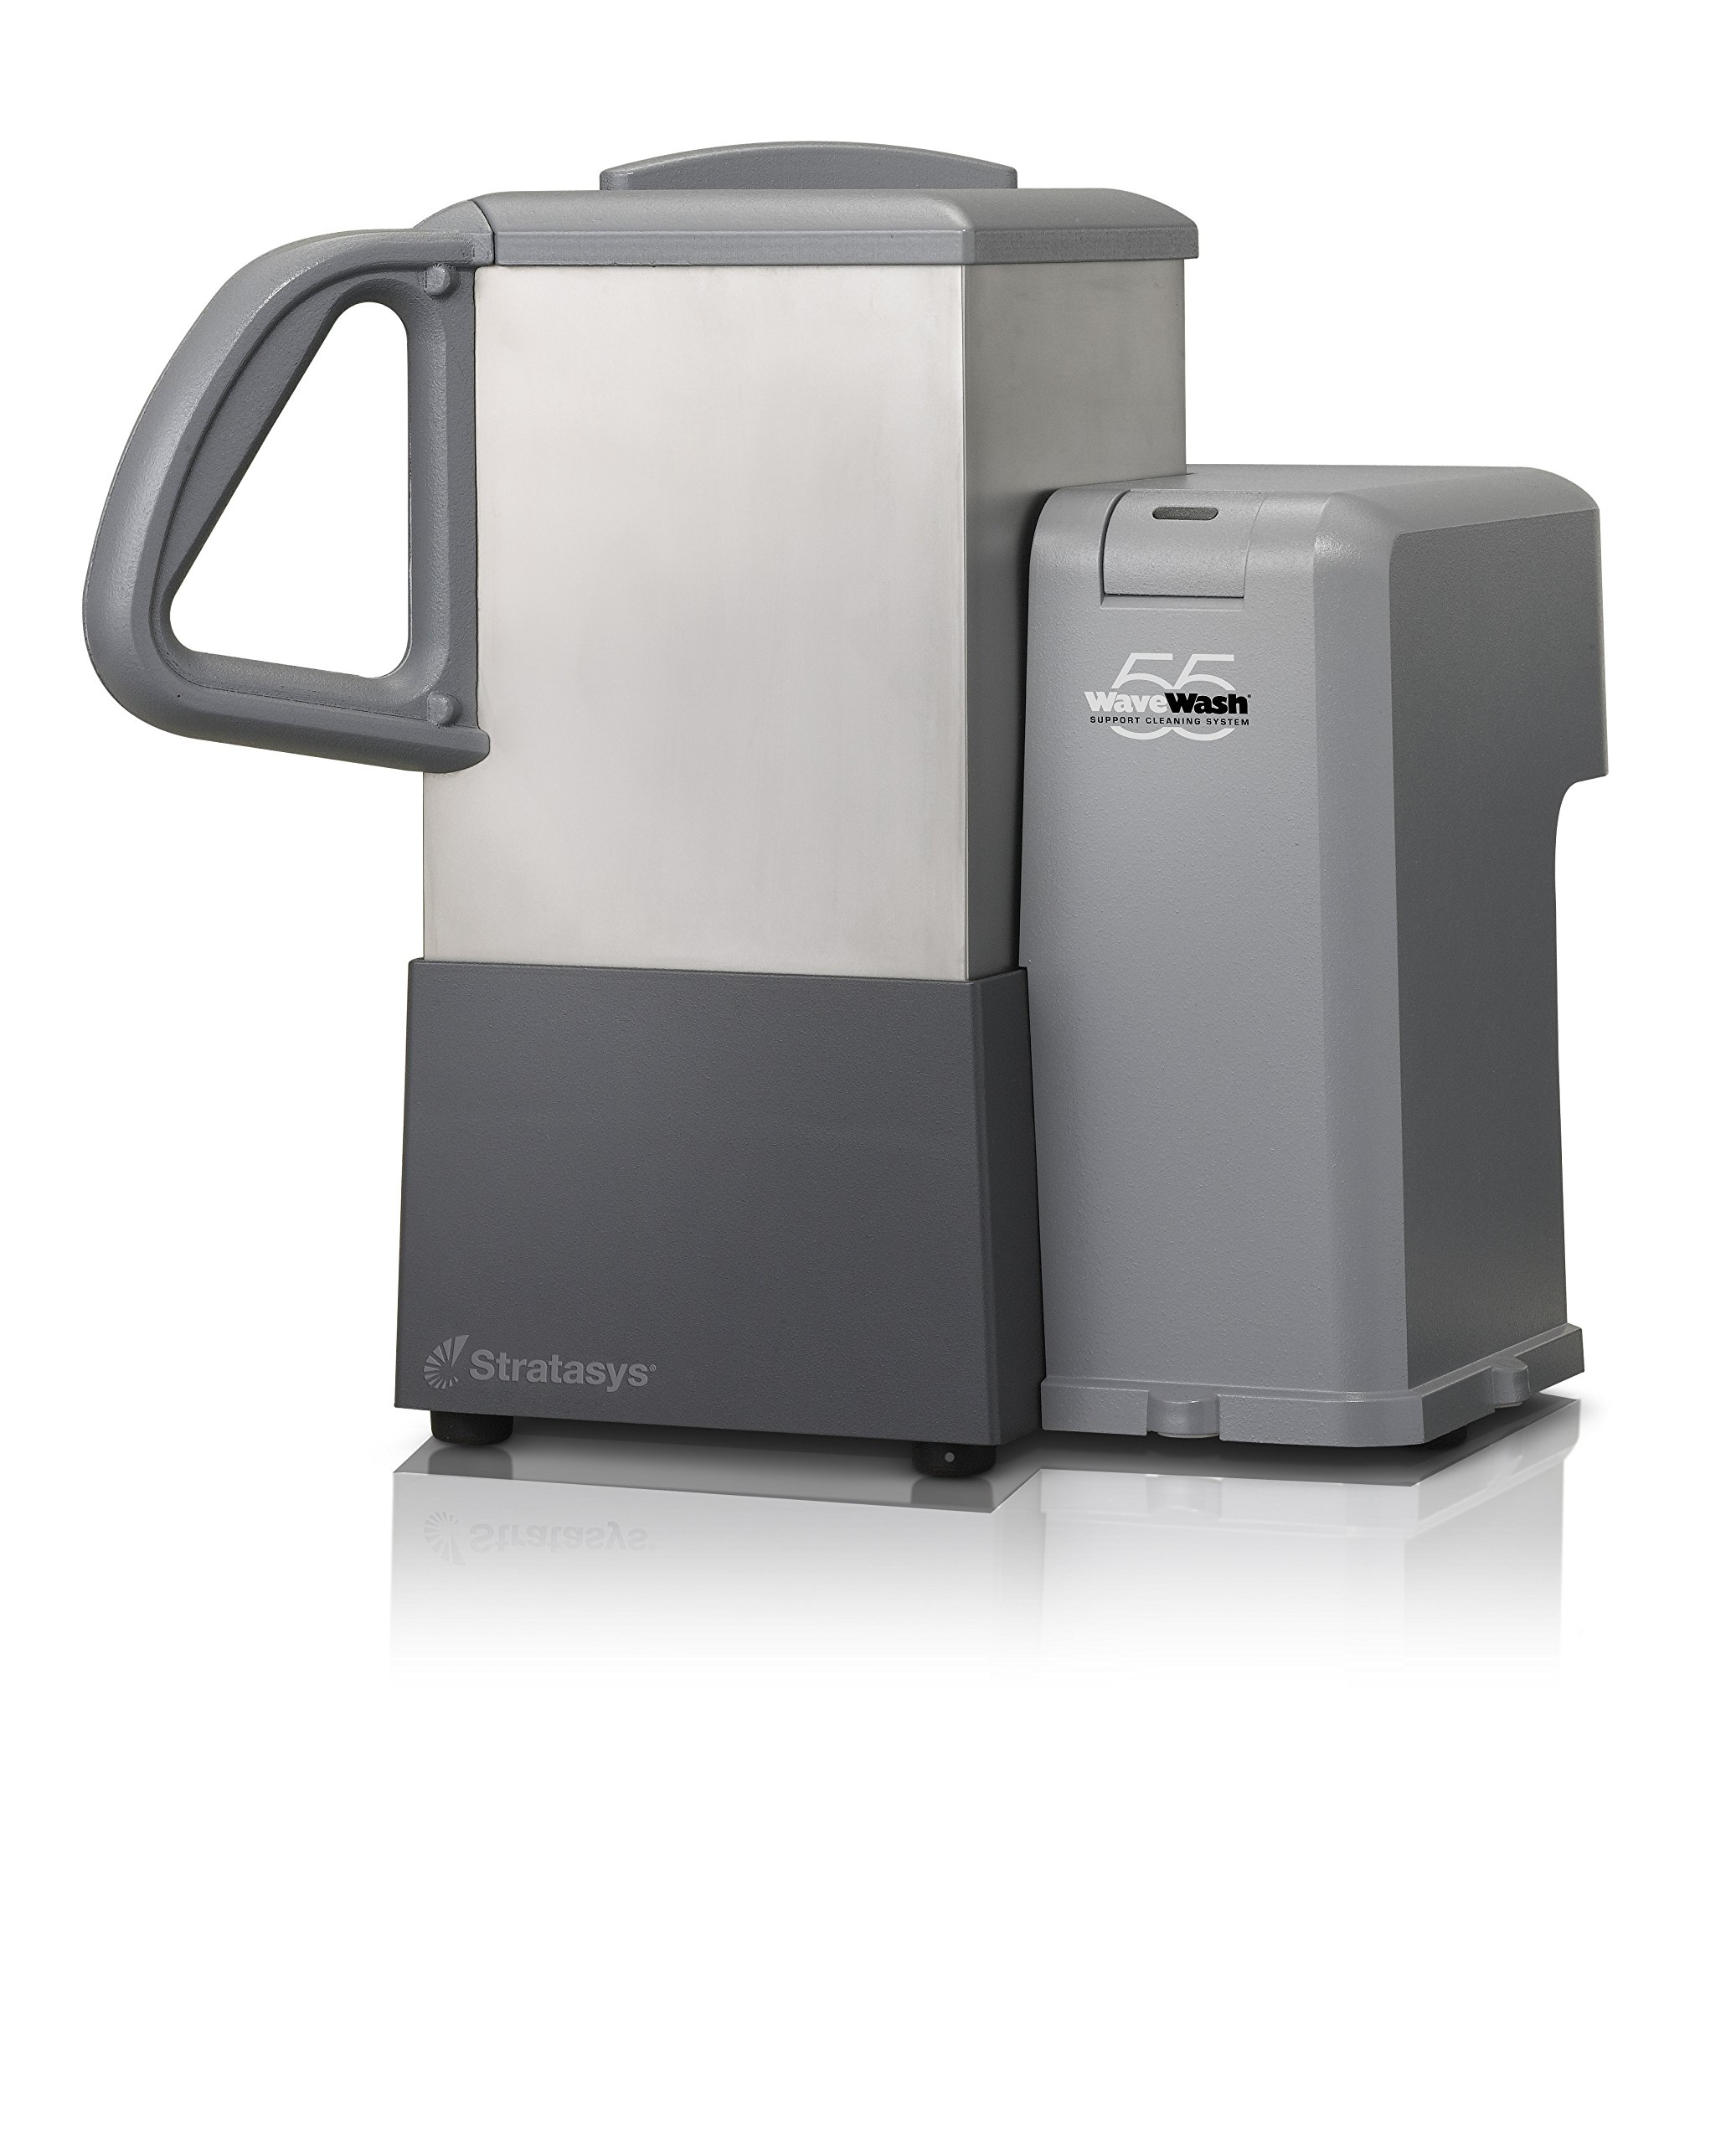 Stratasys WaveWash 55 Support Cleaning System